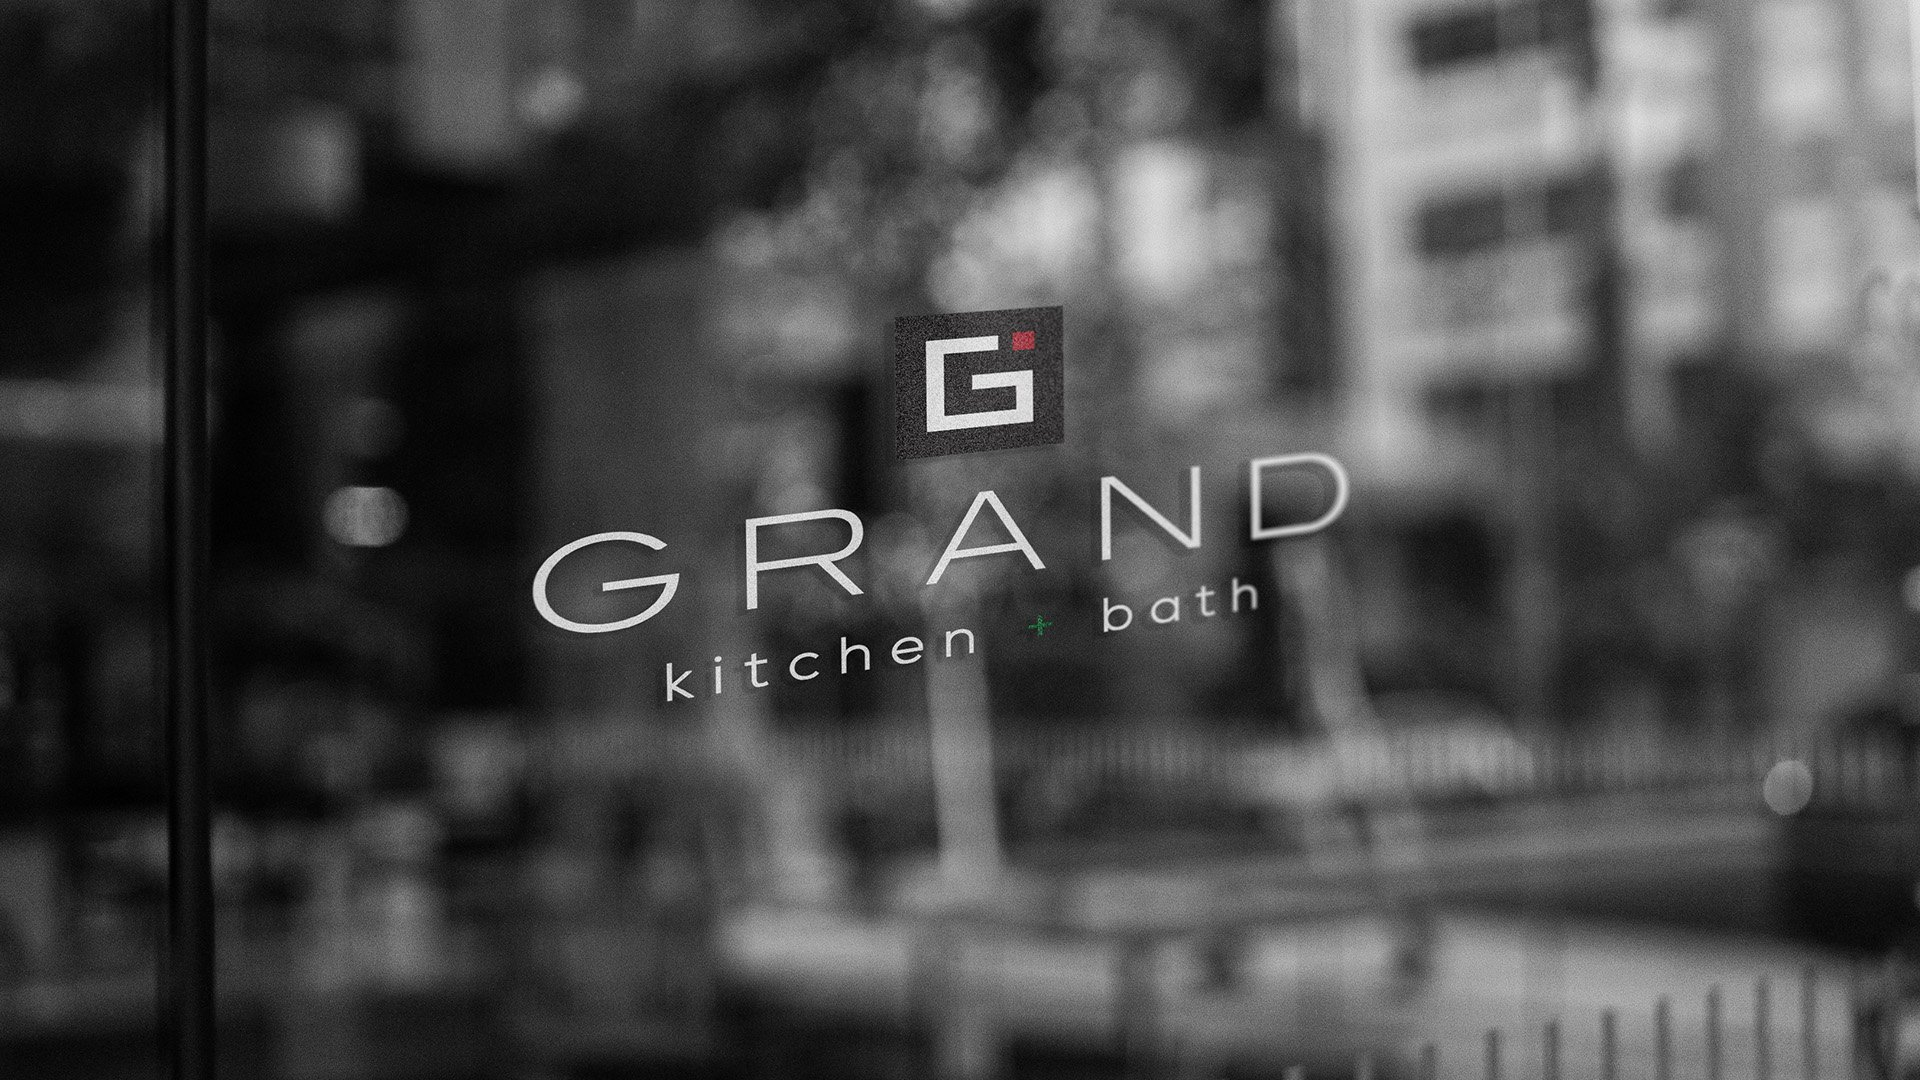 Grand Kitchen & Bath – Phoenix3 Marketing